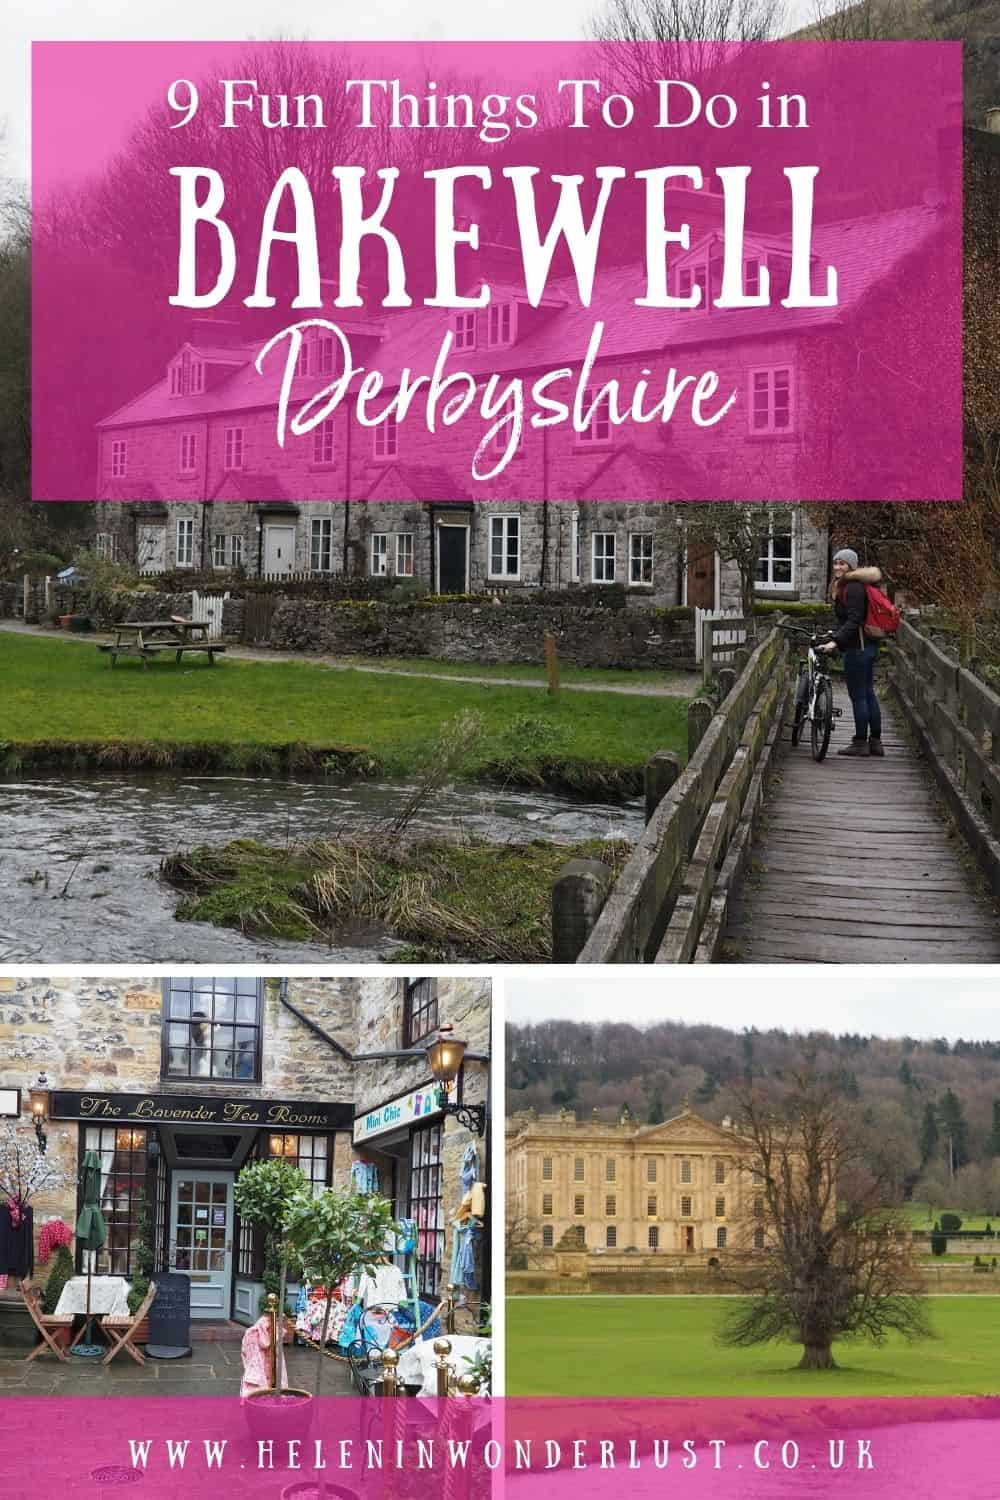 9 Fun Things To Do in Bakewell, Derbyshire